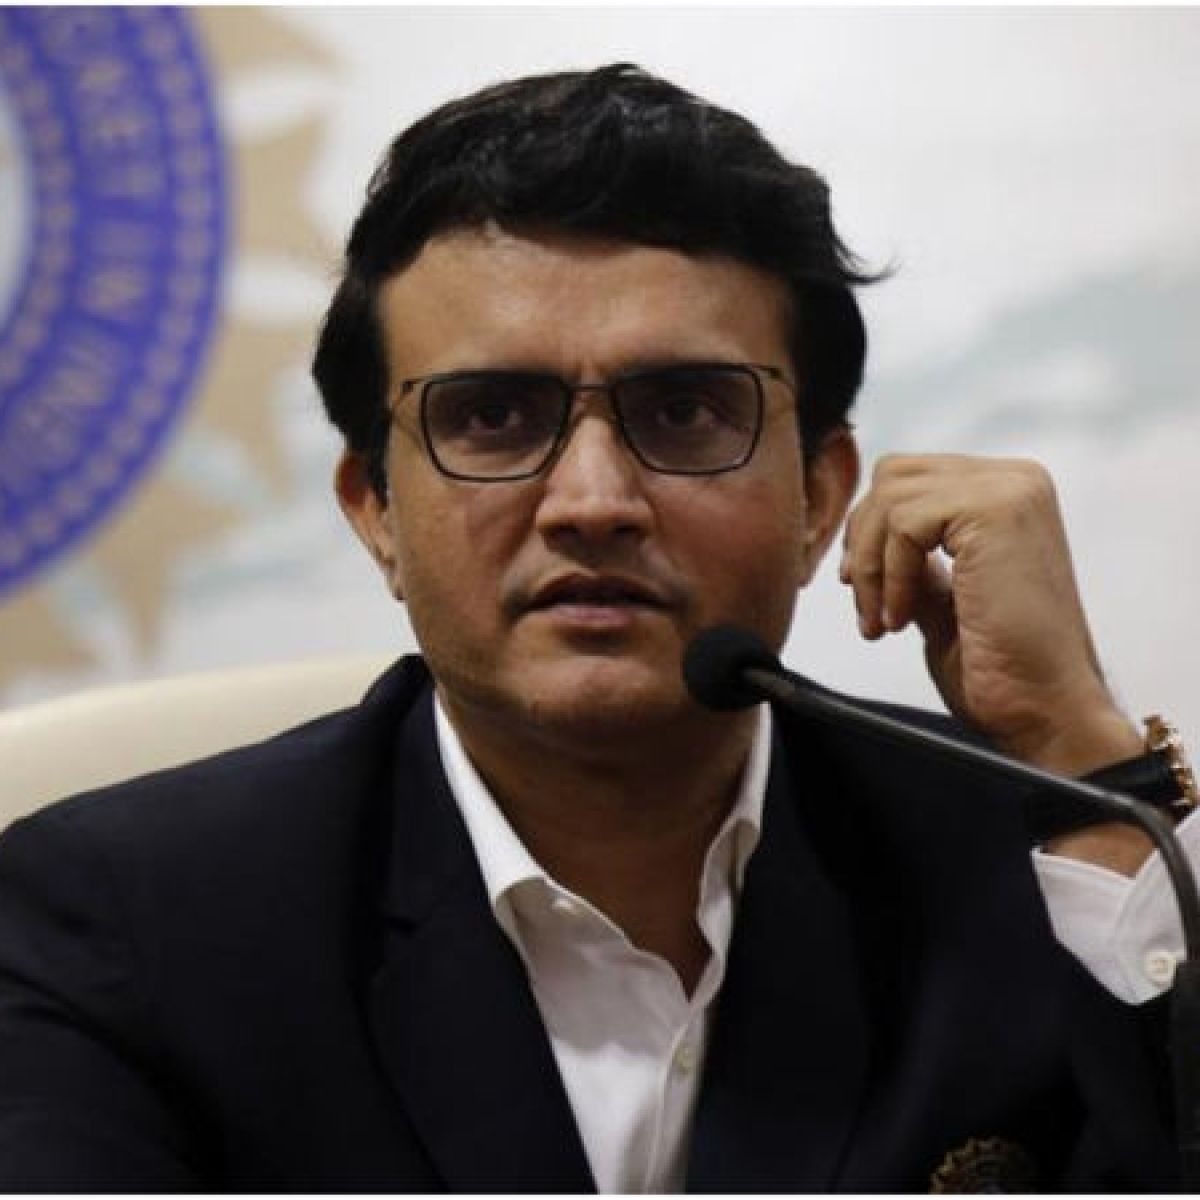 'We will see after we receive it': BCCI president Sourav Ganguly on CEO Rahul Johri's resignation